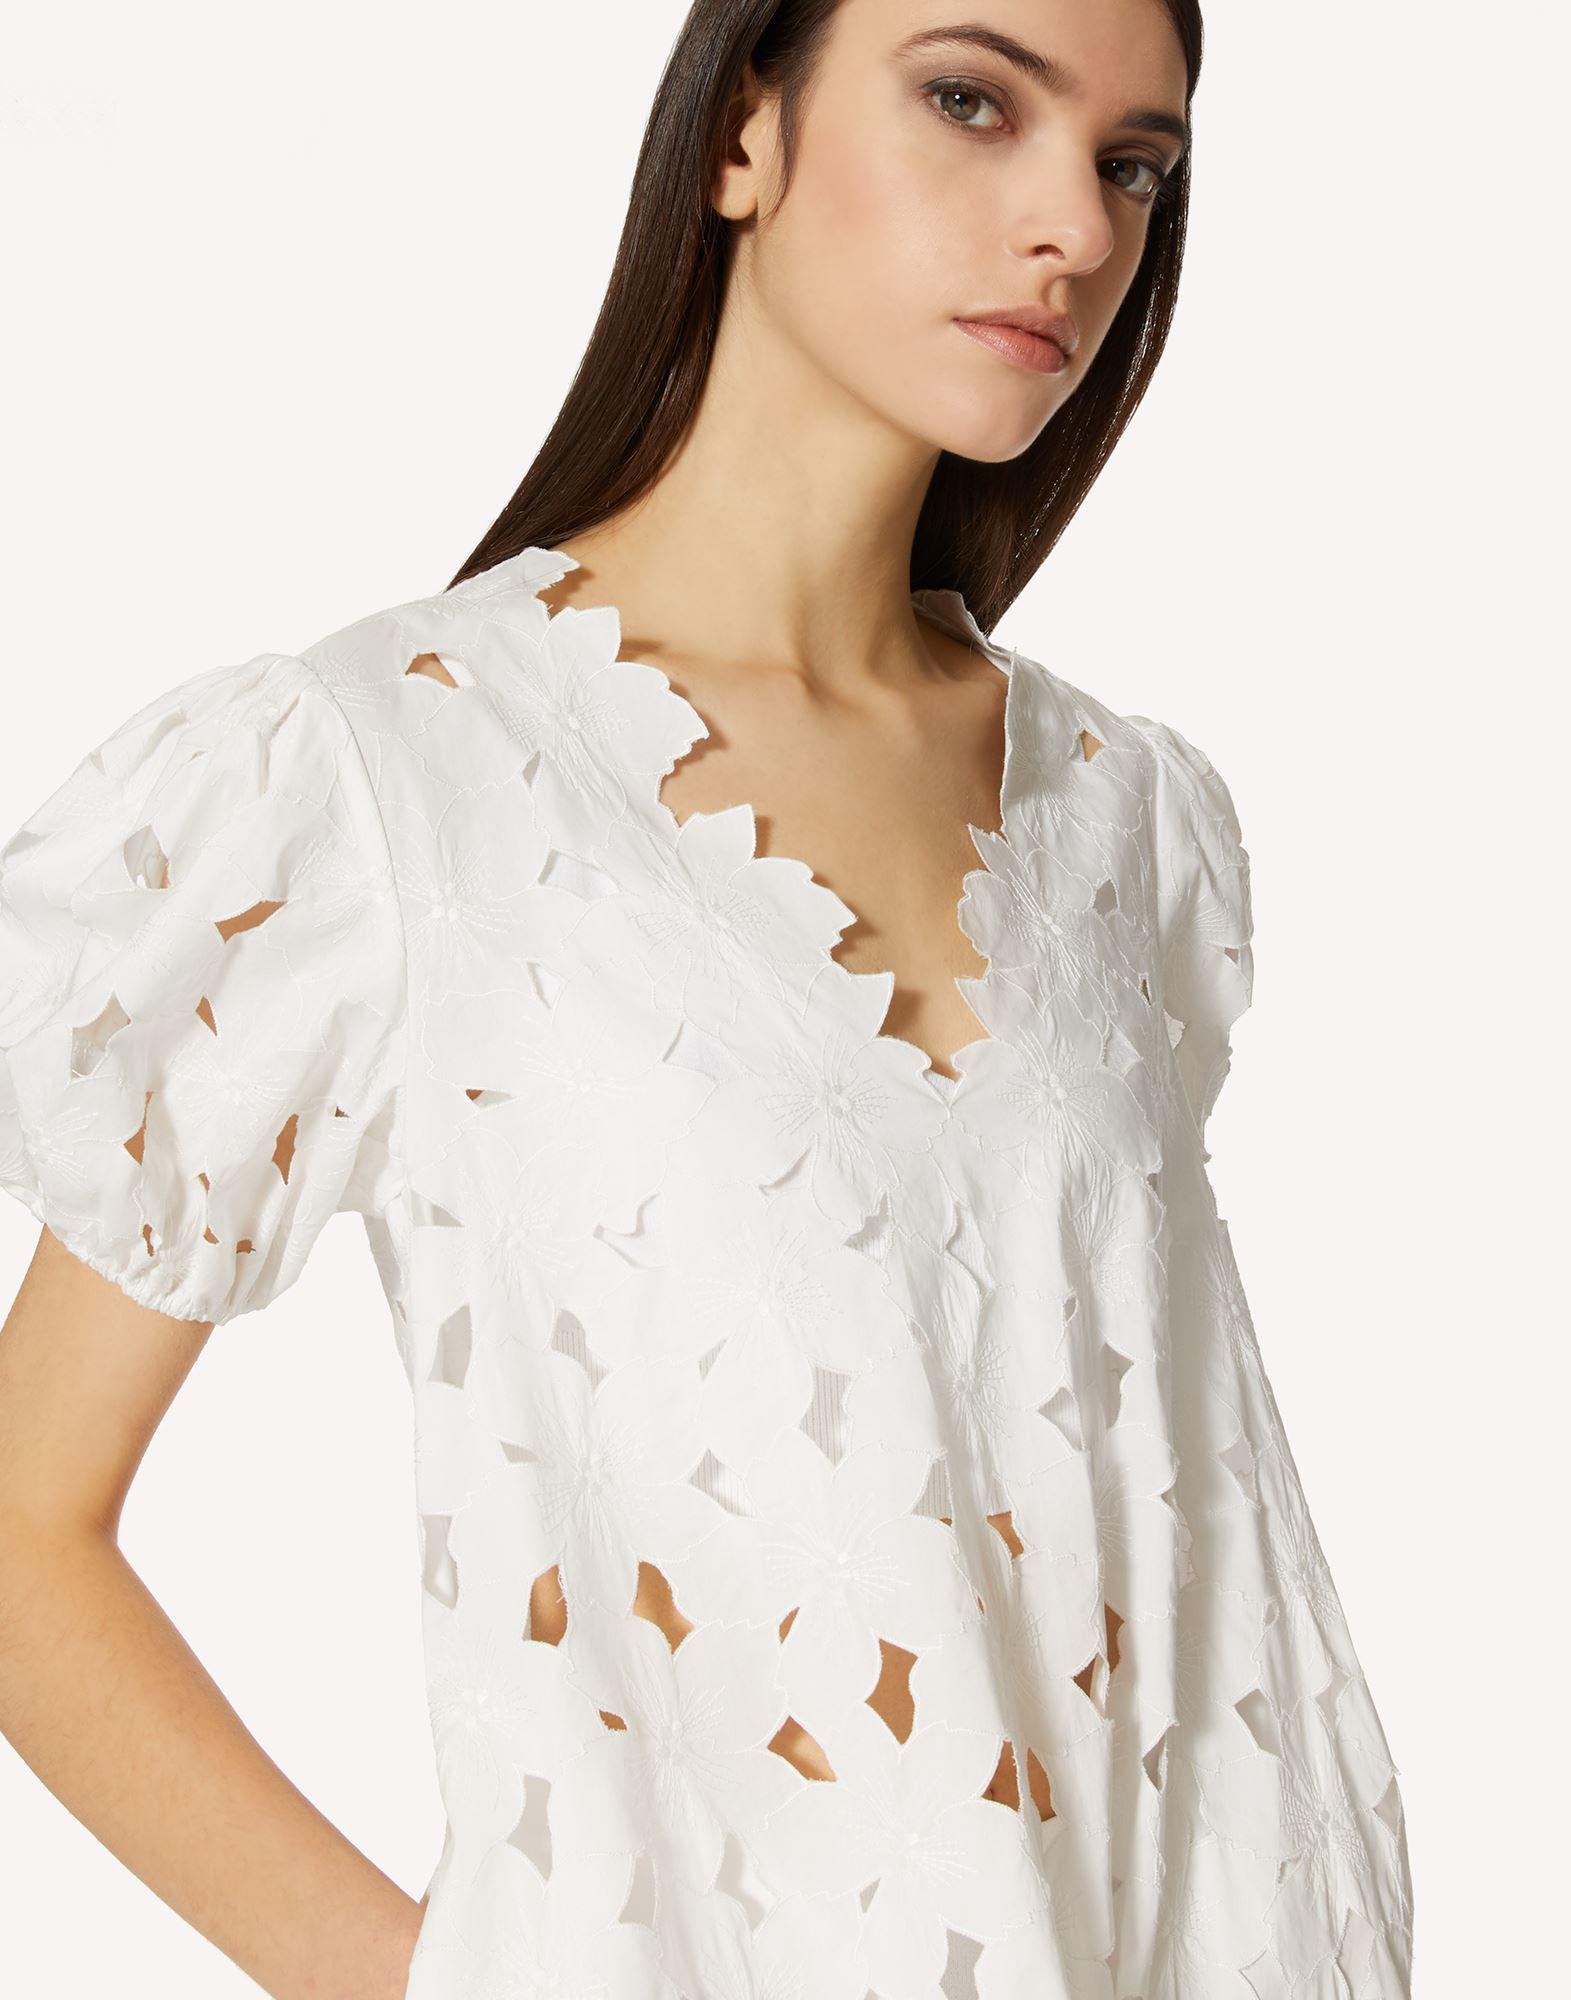 COTTON POPLIN DRESS WITH CUT-OUT EMBROIDERY 3